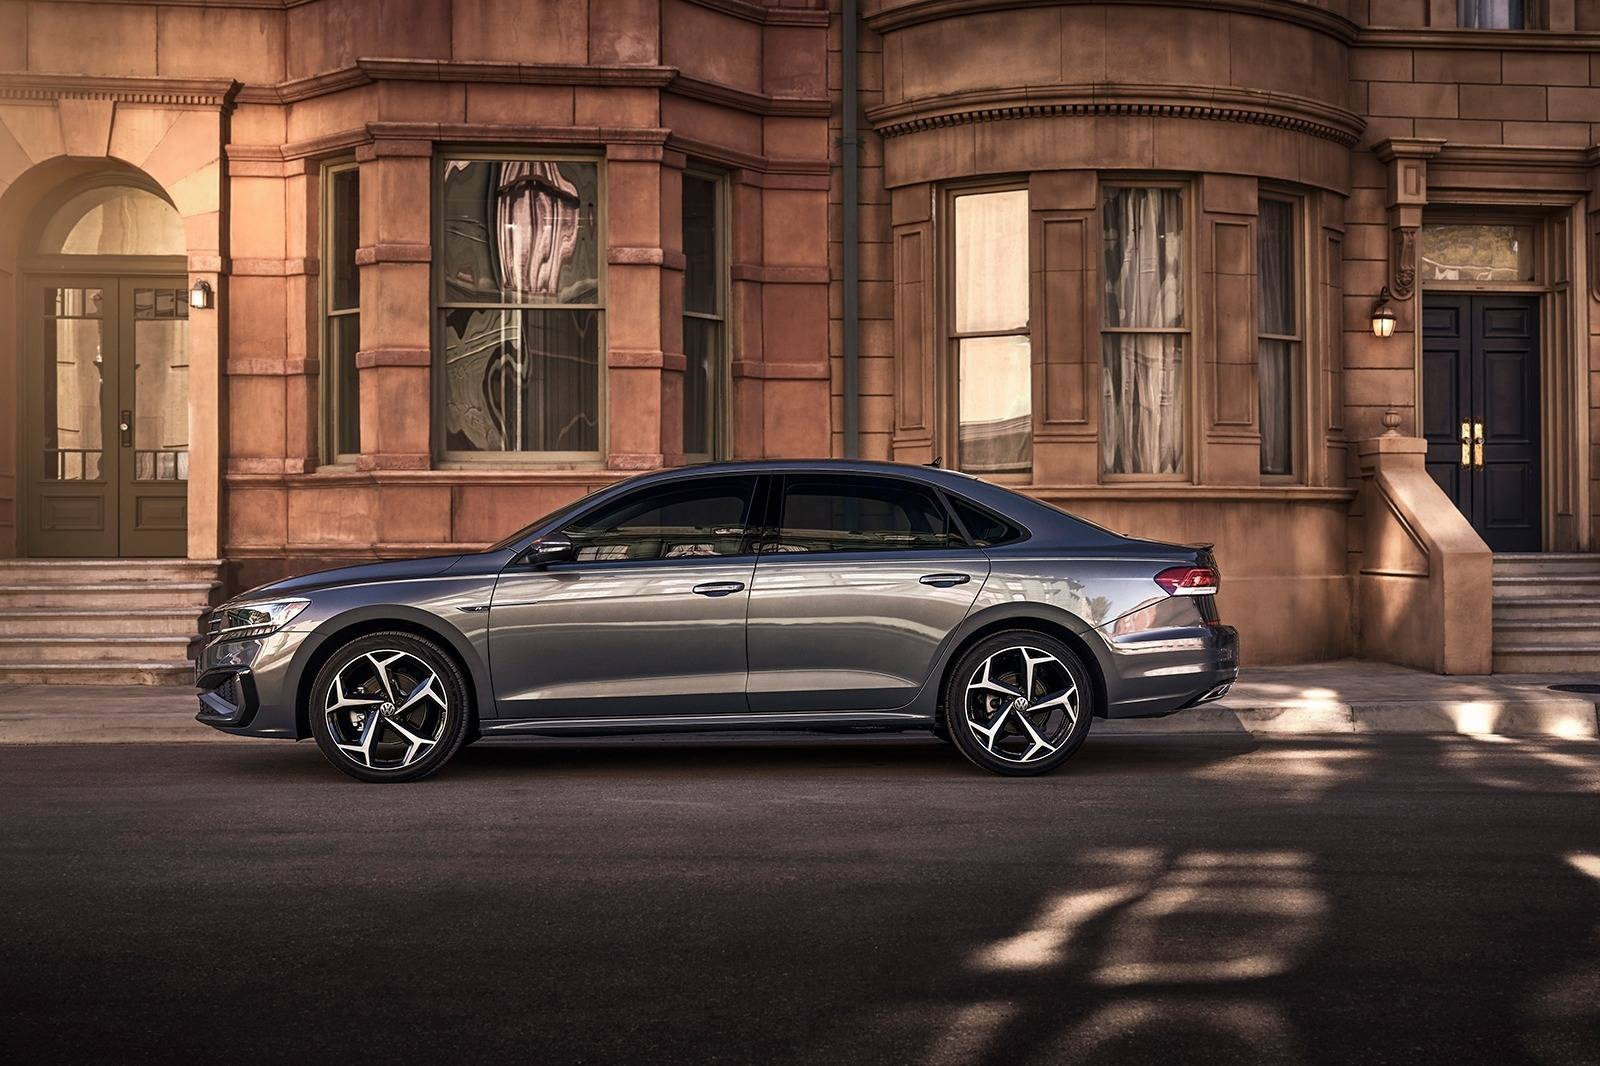 84 The Best 2020 Vw Passat Model